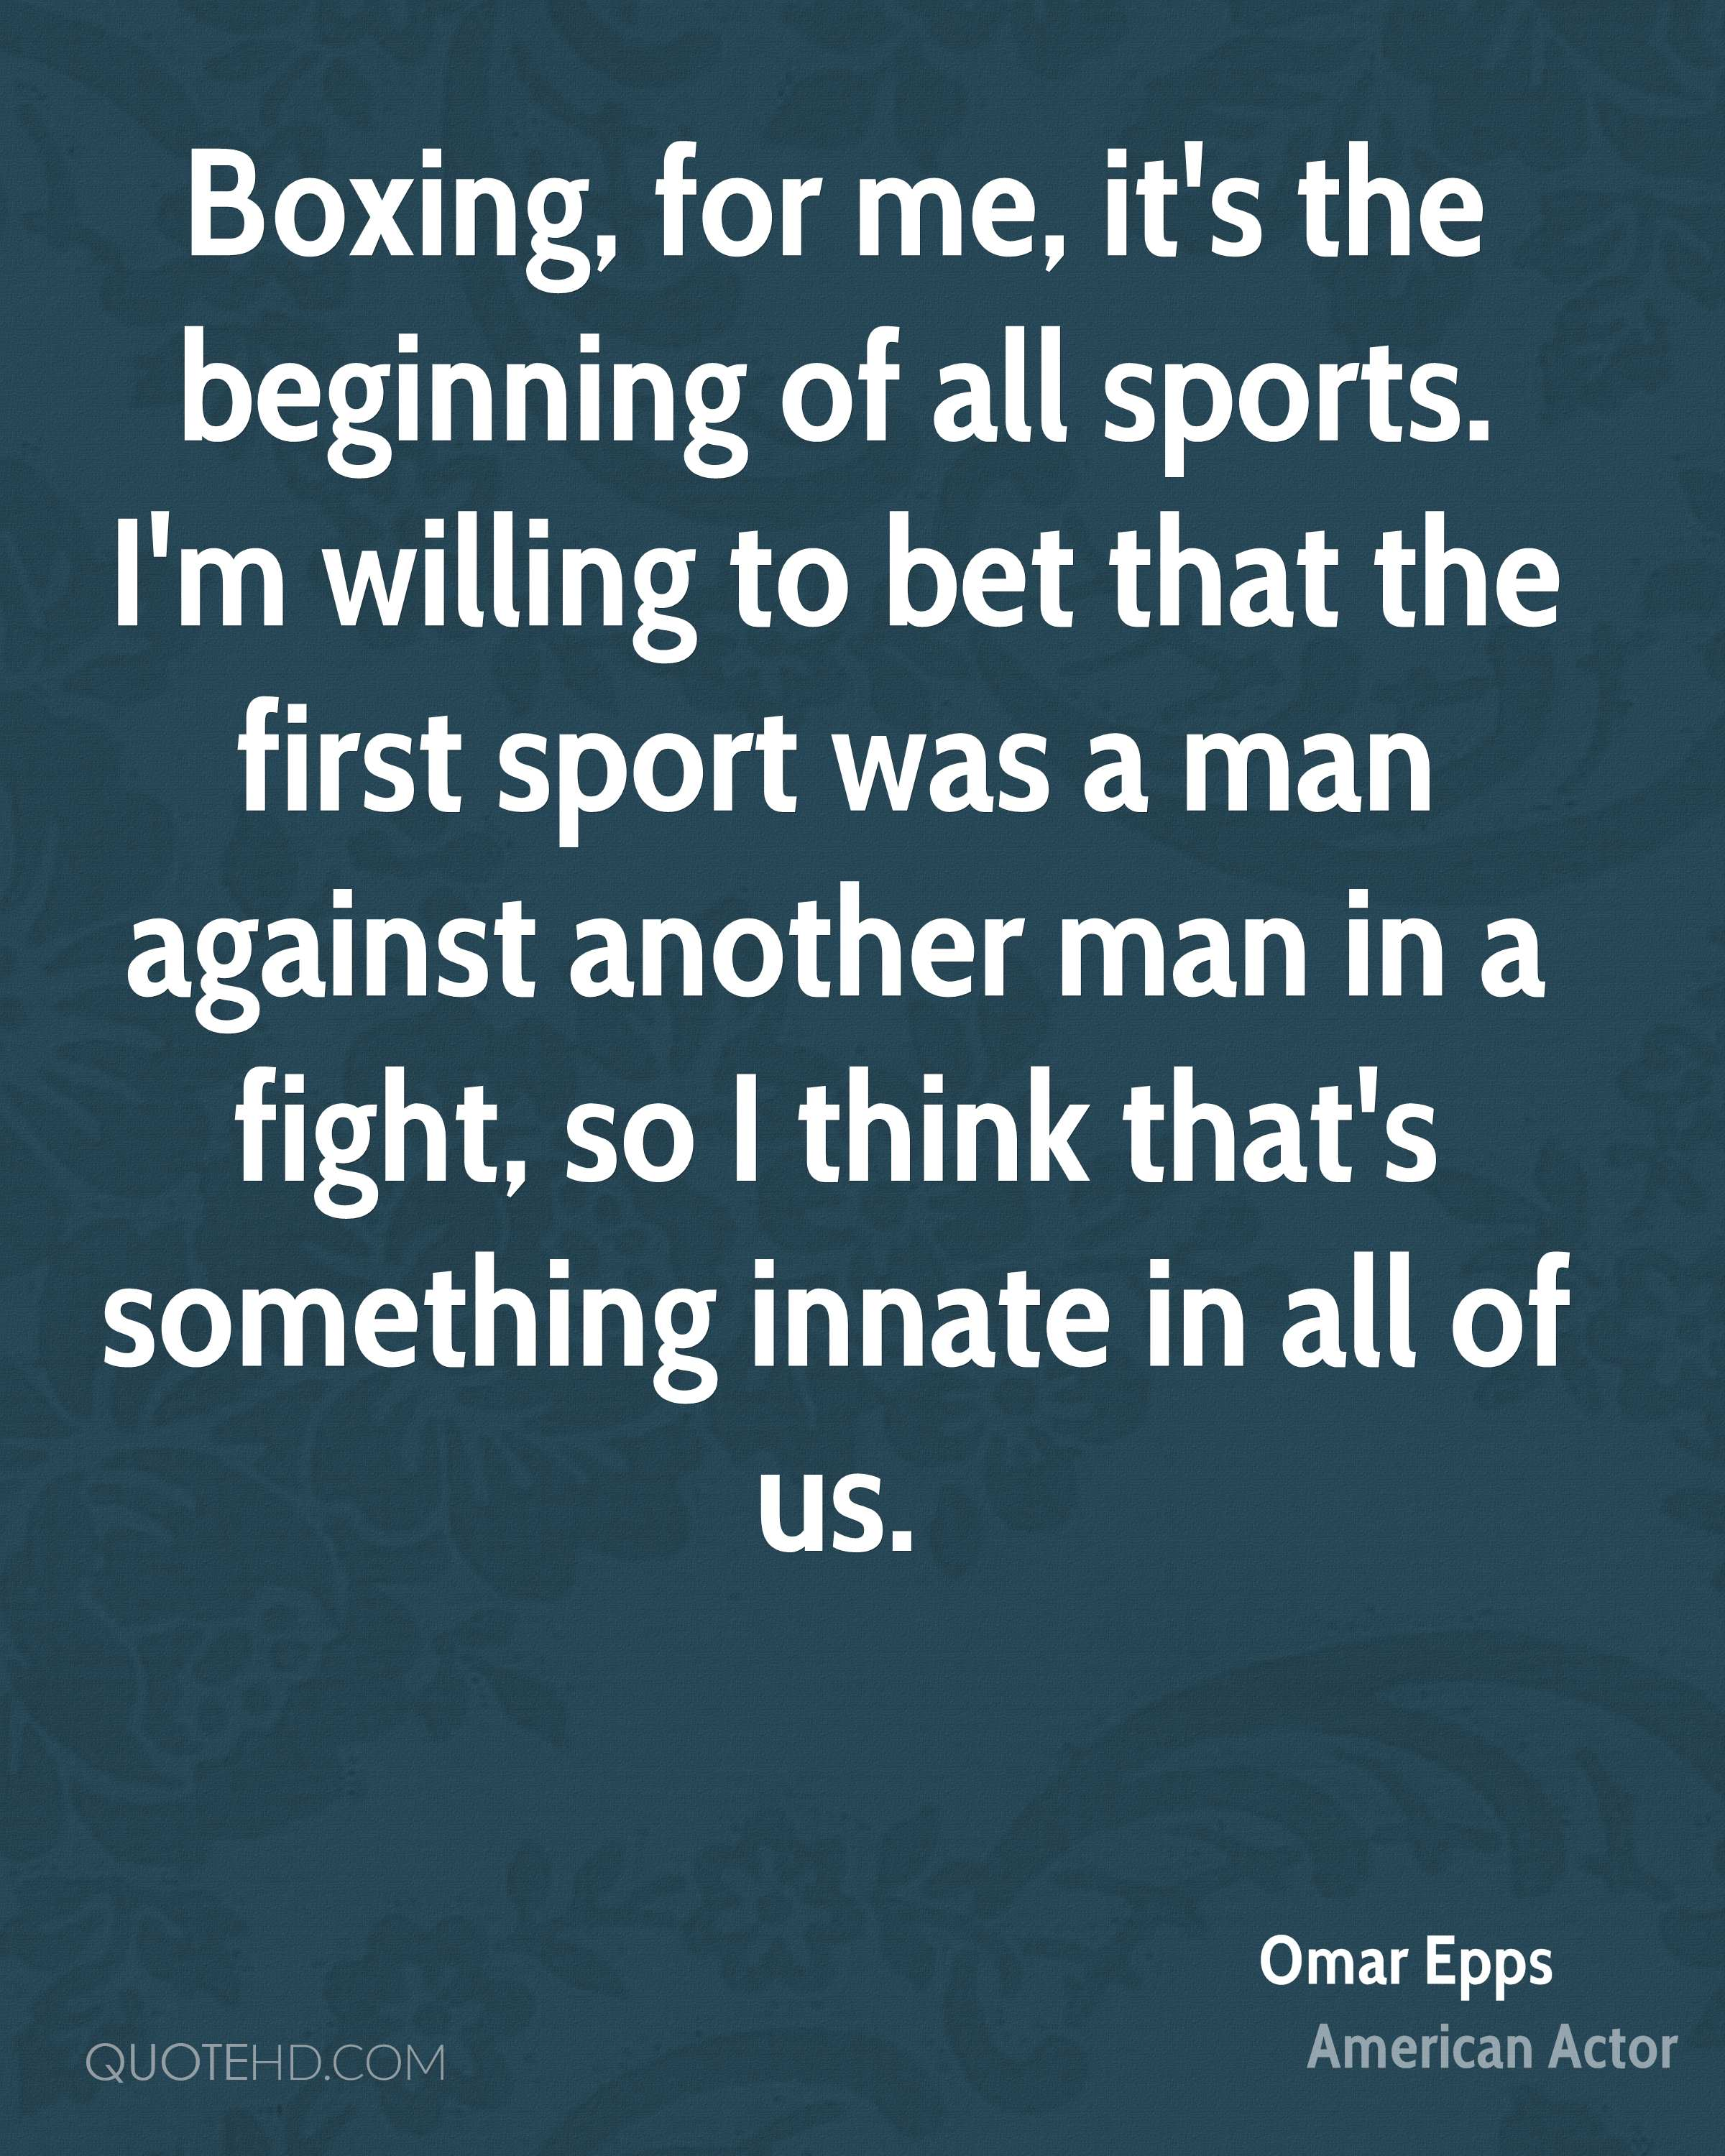 Boxing, for me, it's the beginning of all sports. I'm willing to bet that the first sport was a man against another man in a fight, so I think that's something innate in all of us.